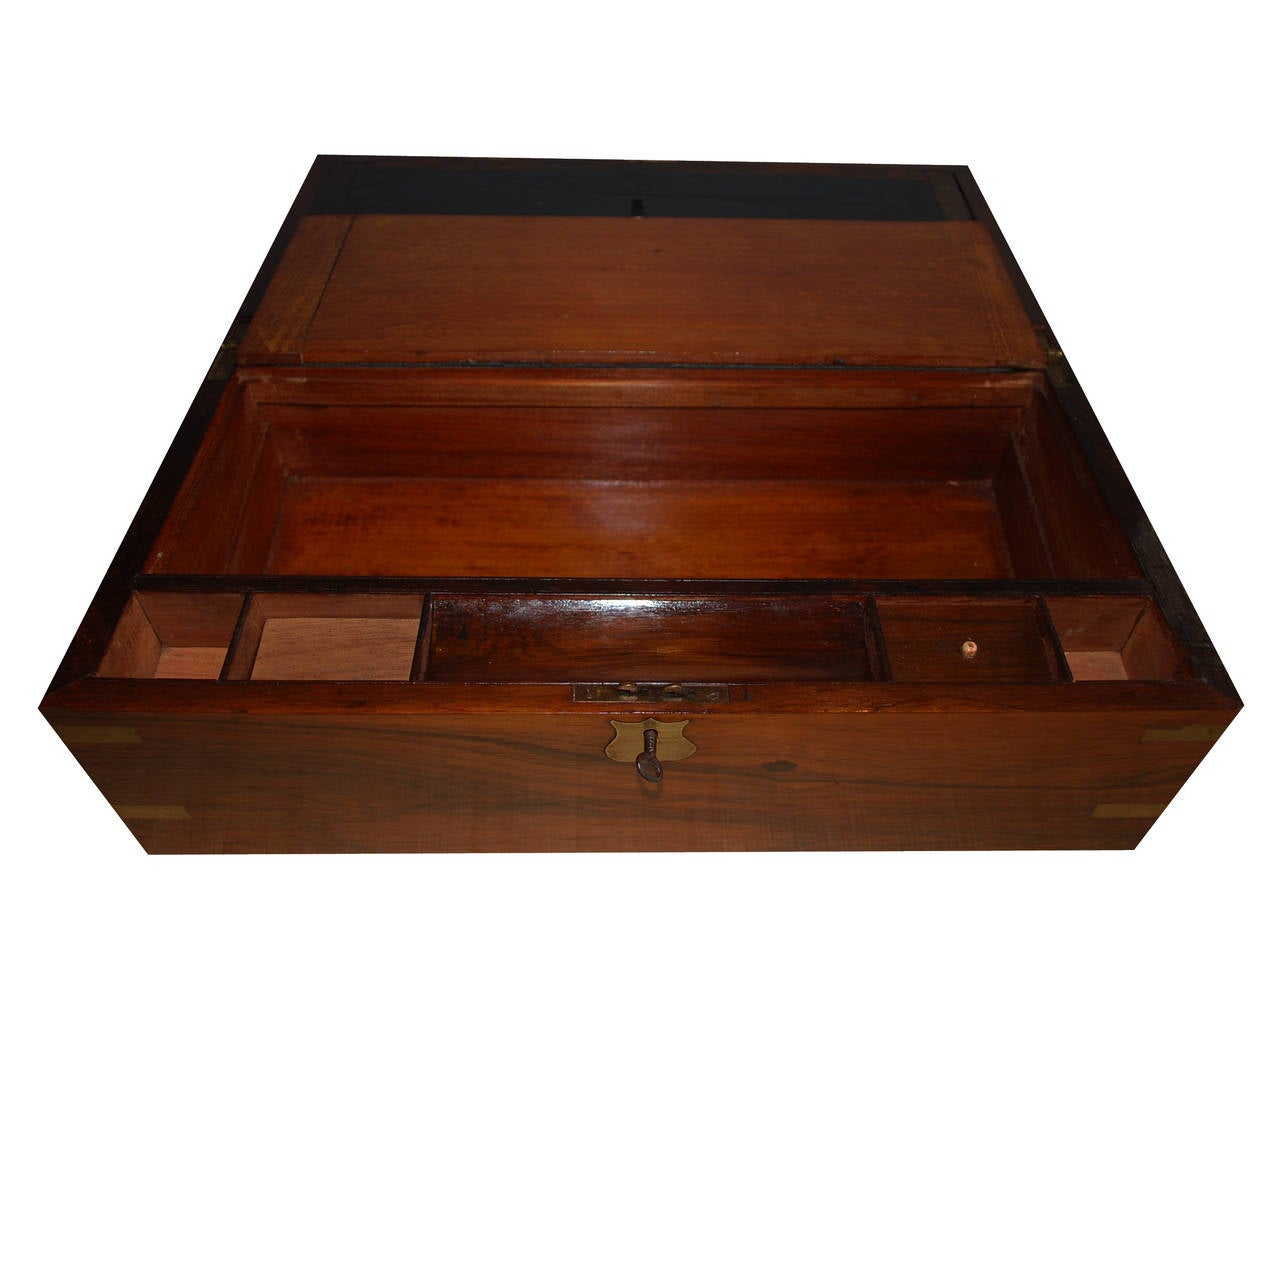 19th Century Mahogany Writing Box In Good Condition For Sale In Casteren, NL